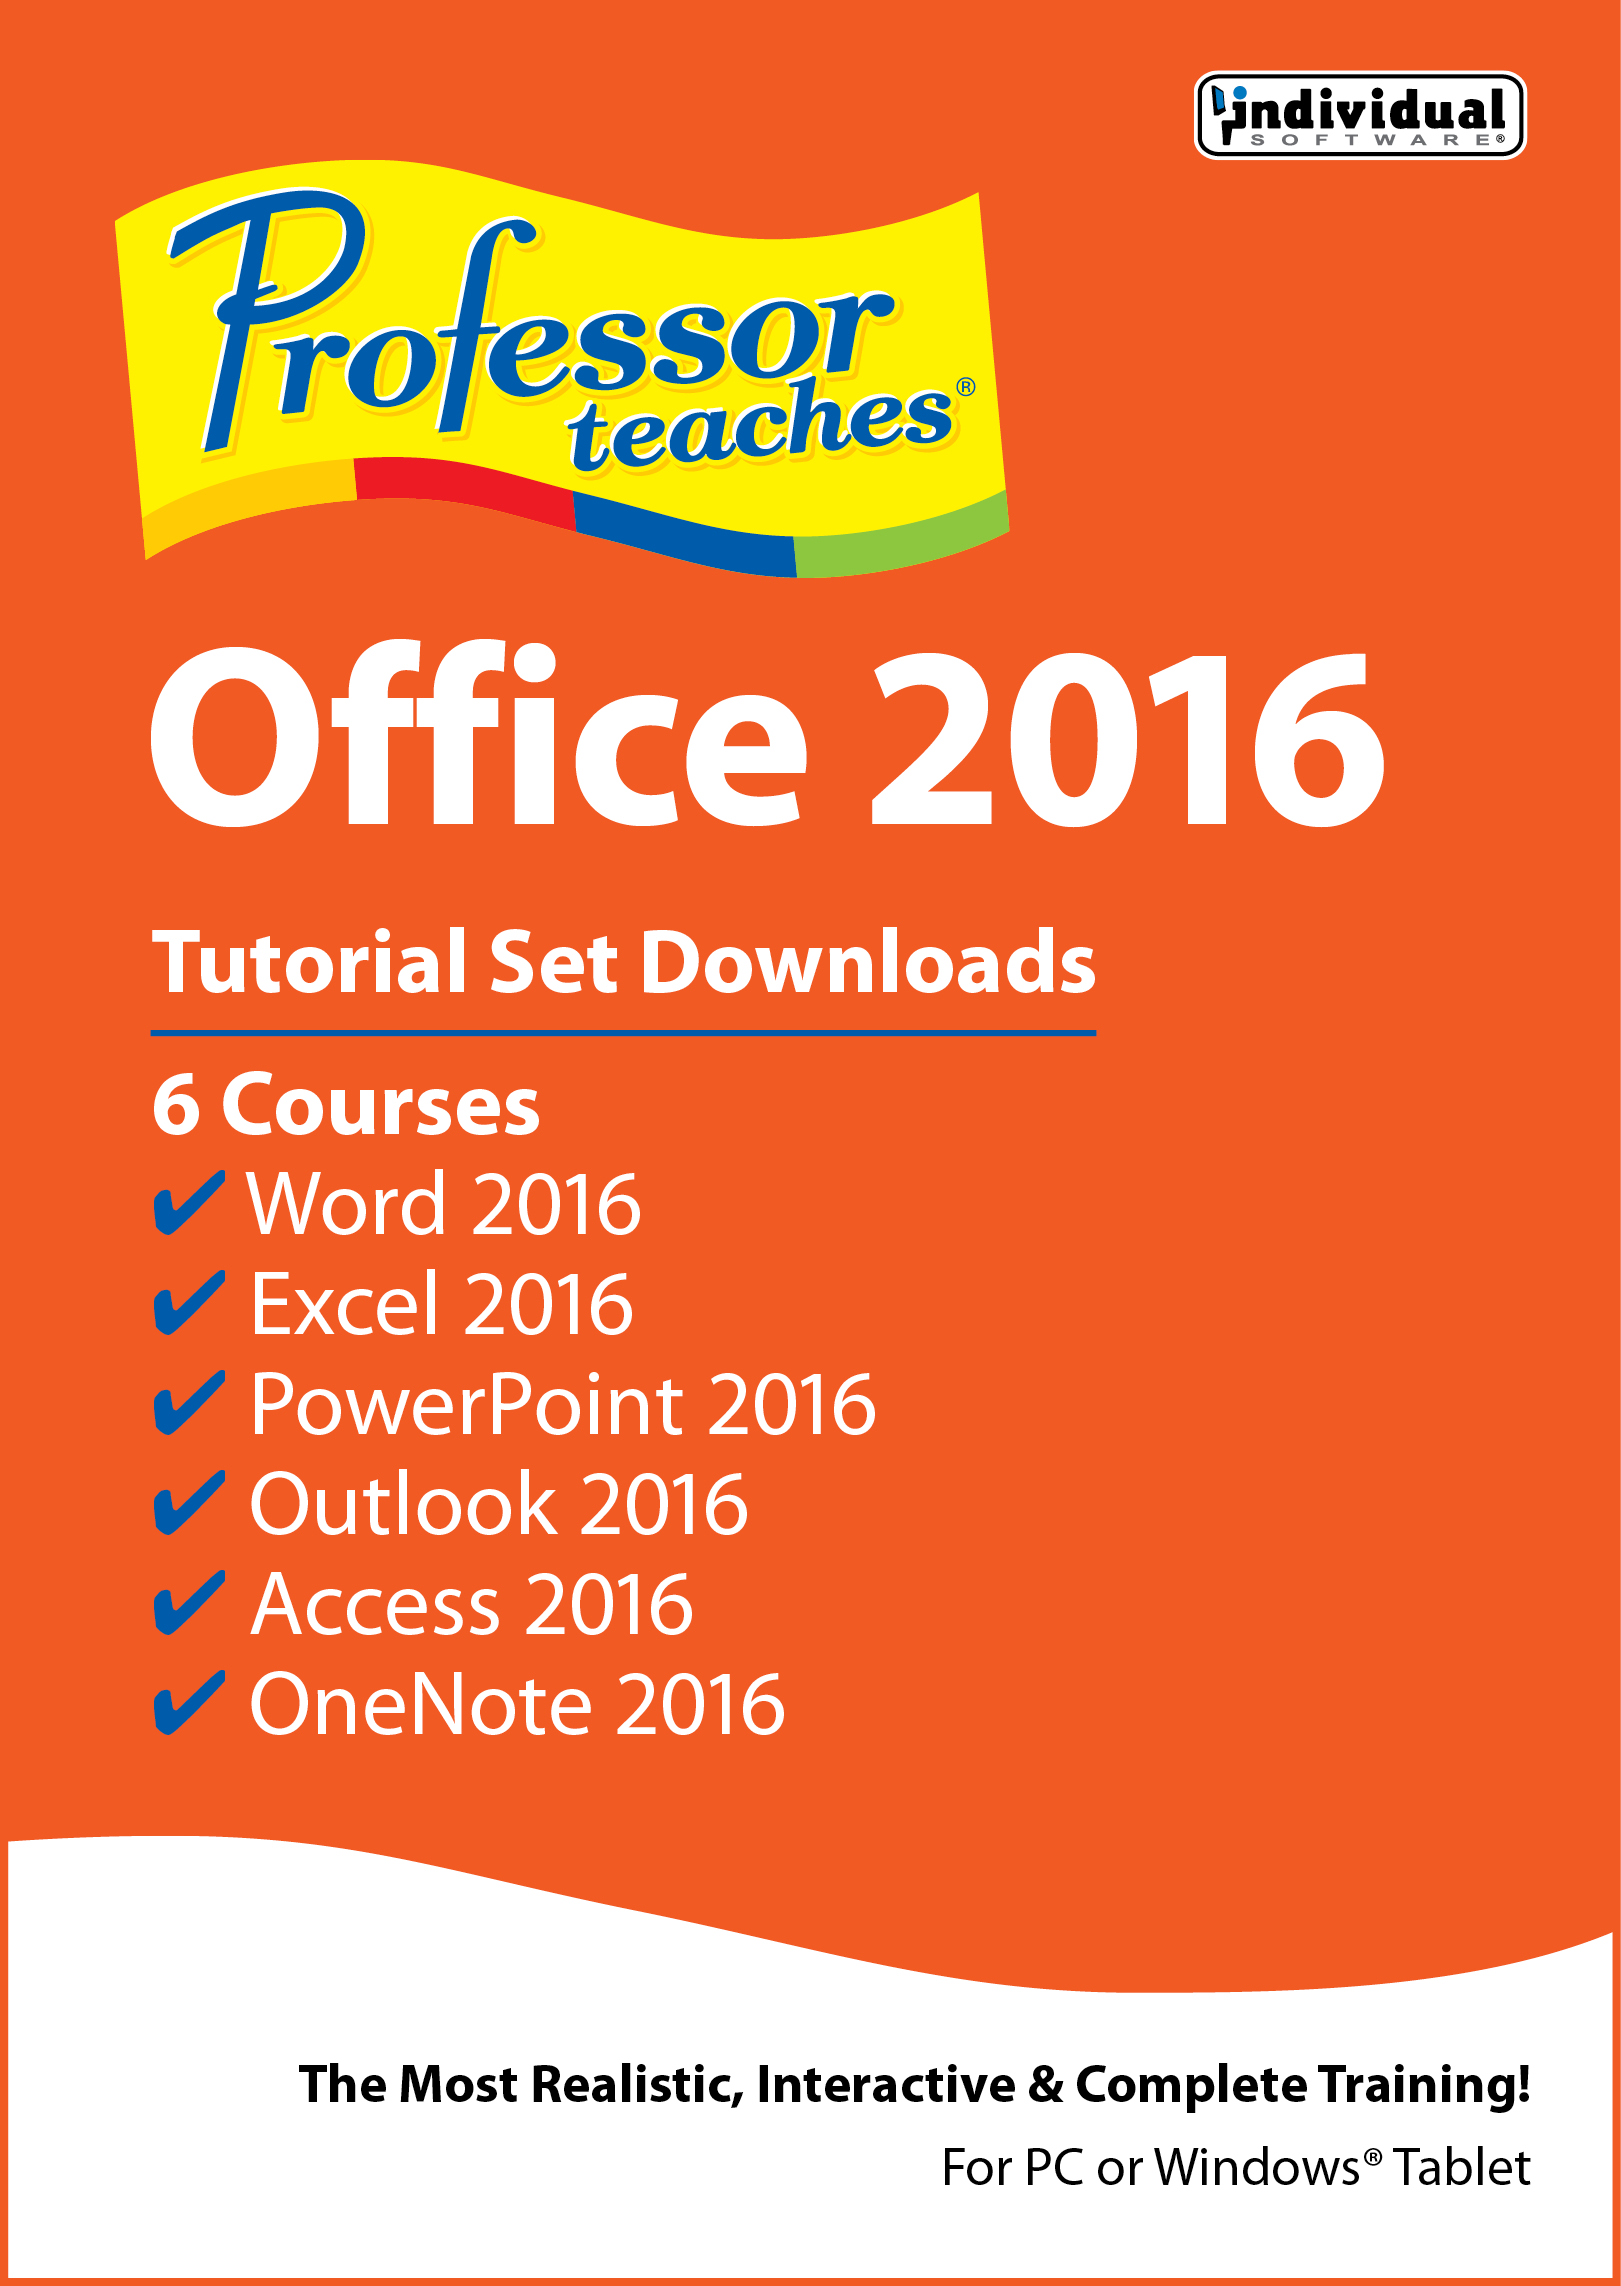 Individual professor teaches office 2017 free download